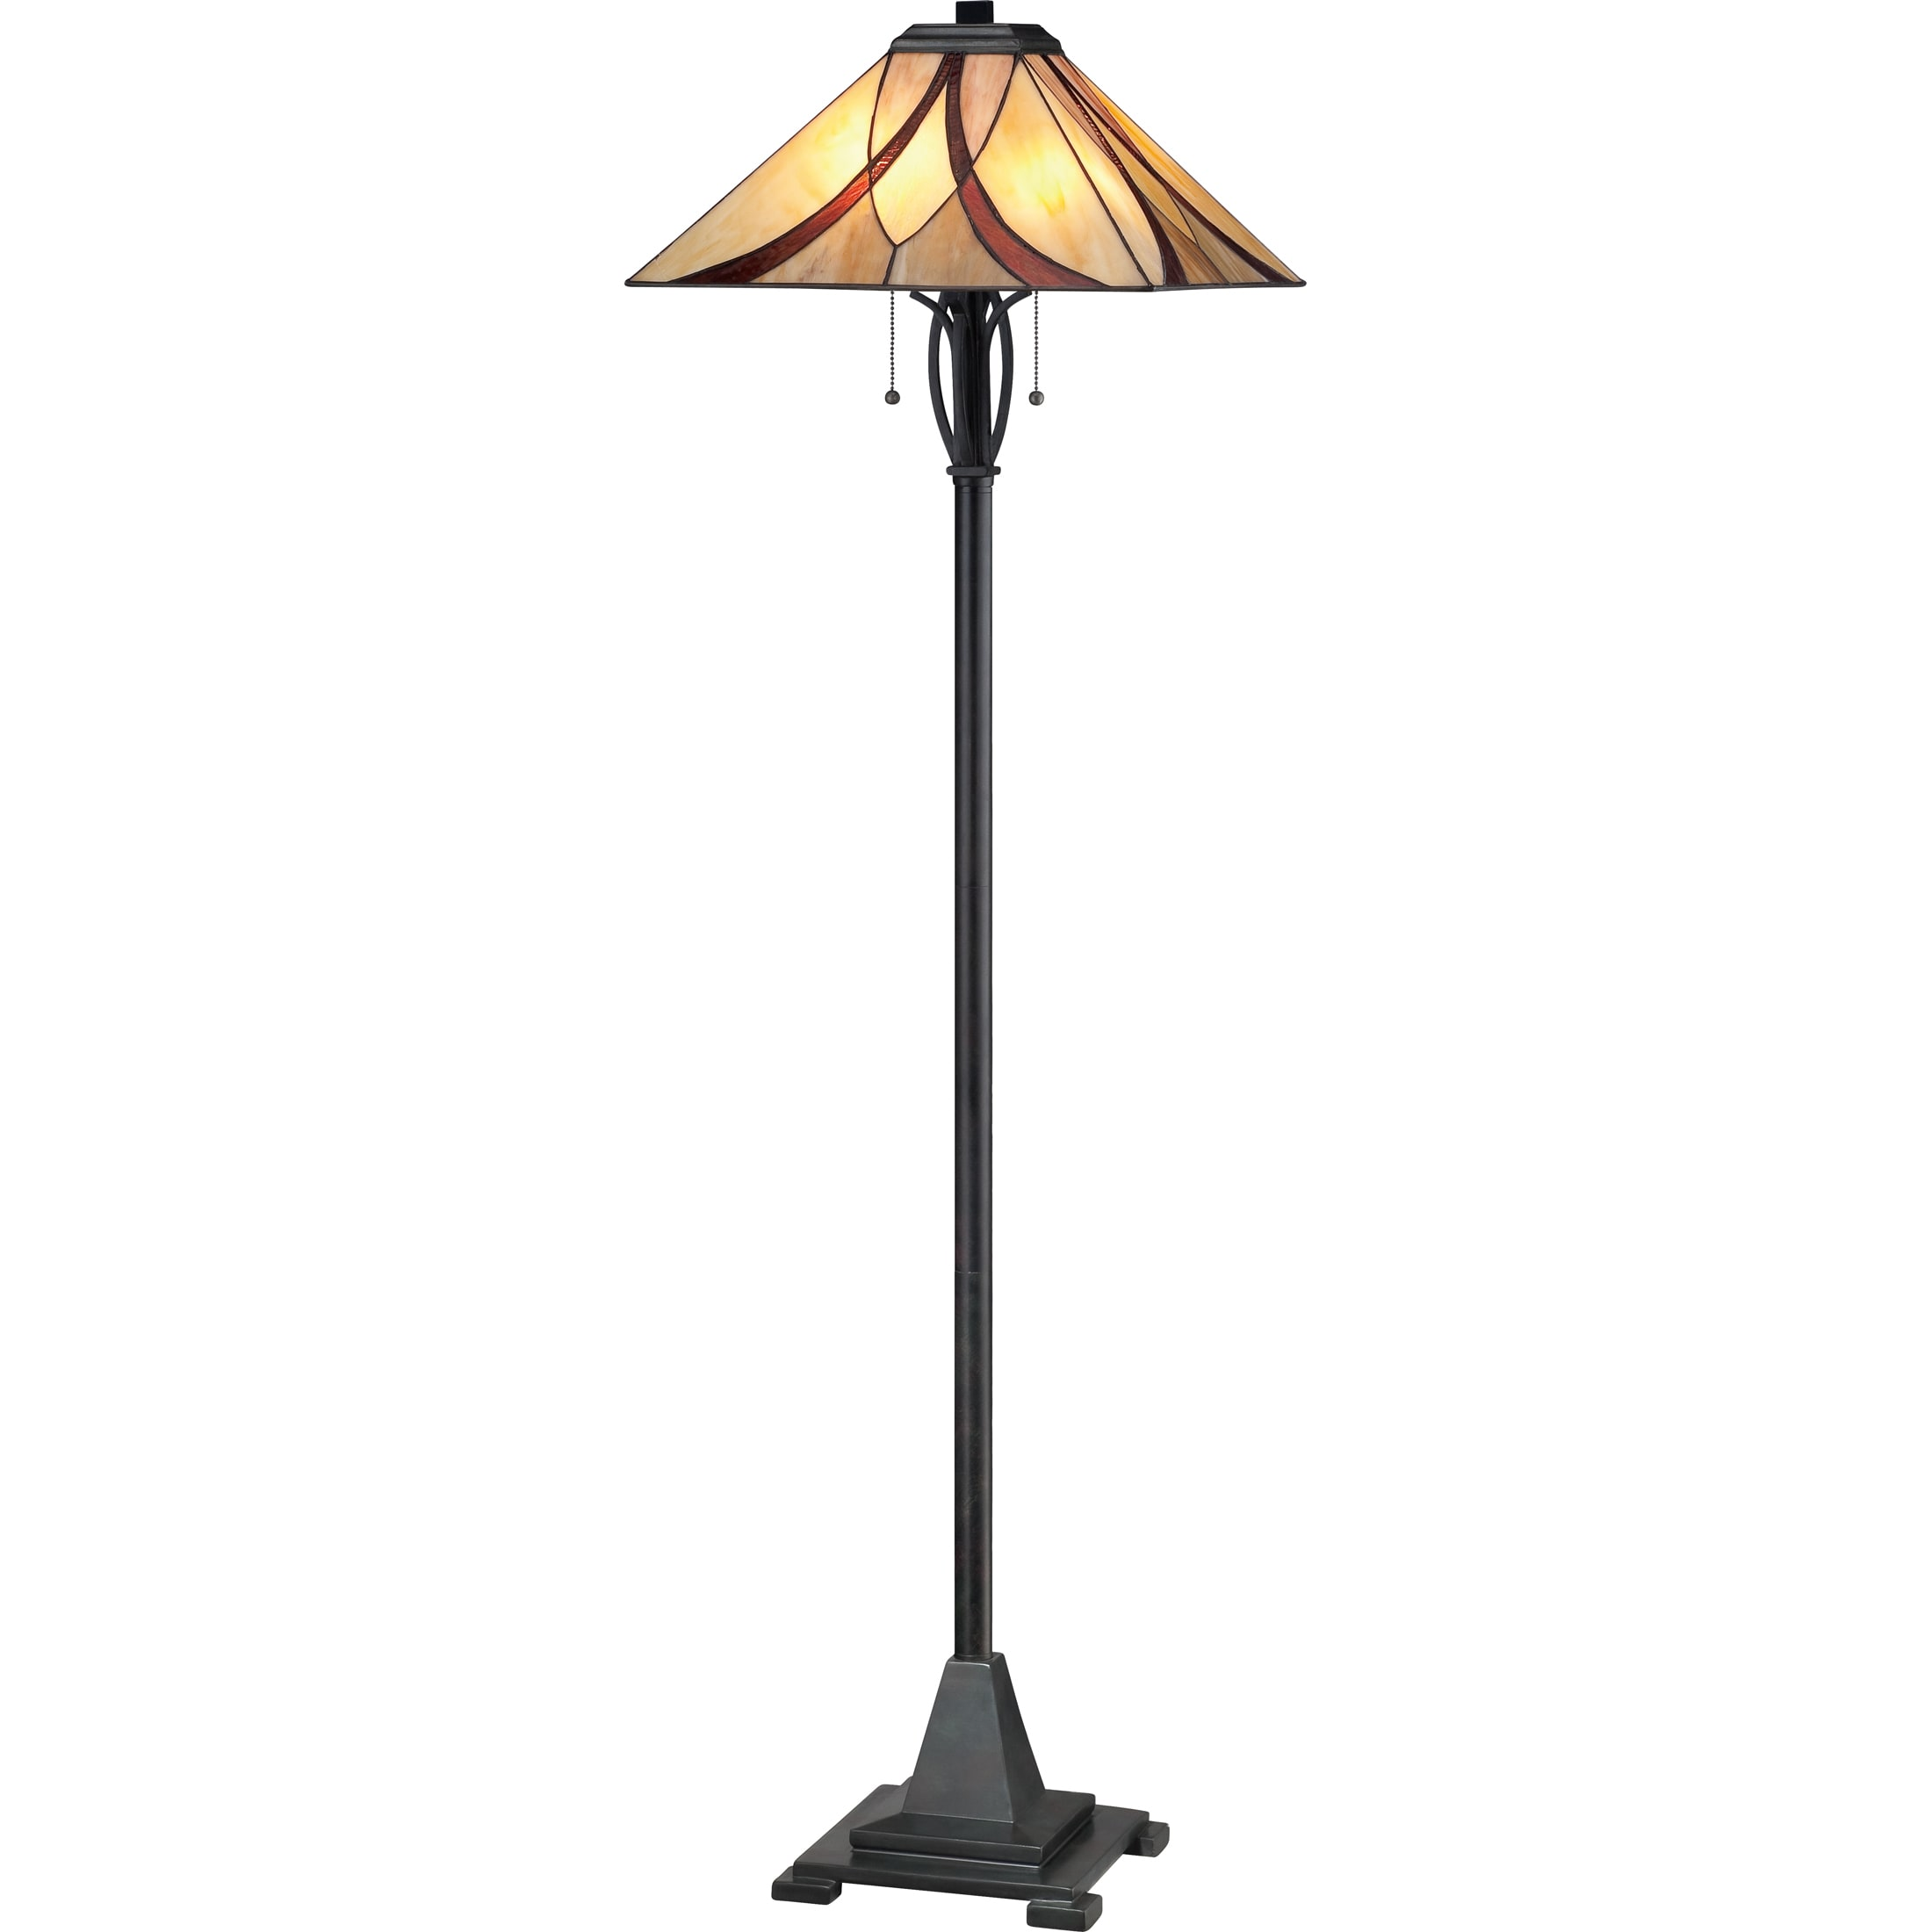 Quoizel Asheville 2 Light Valiant Bronze Tiffany Style Floor Lamp